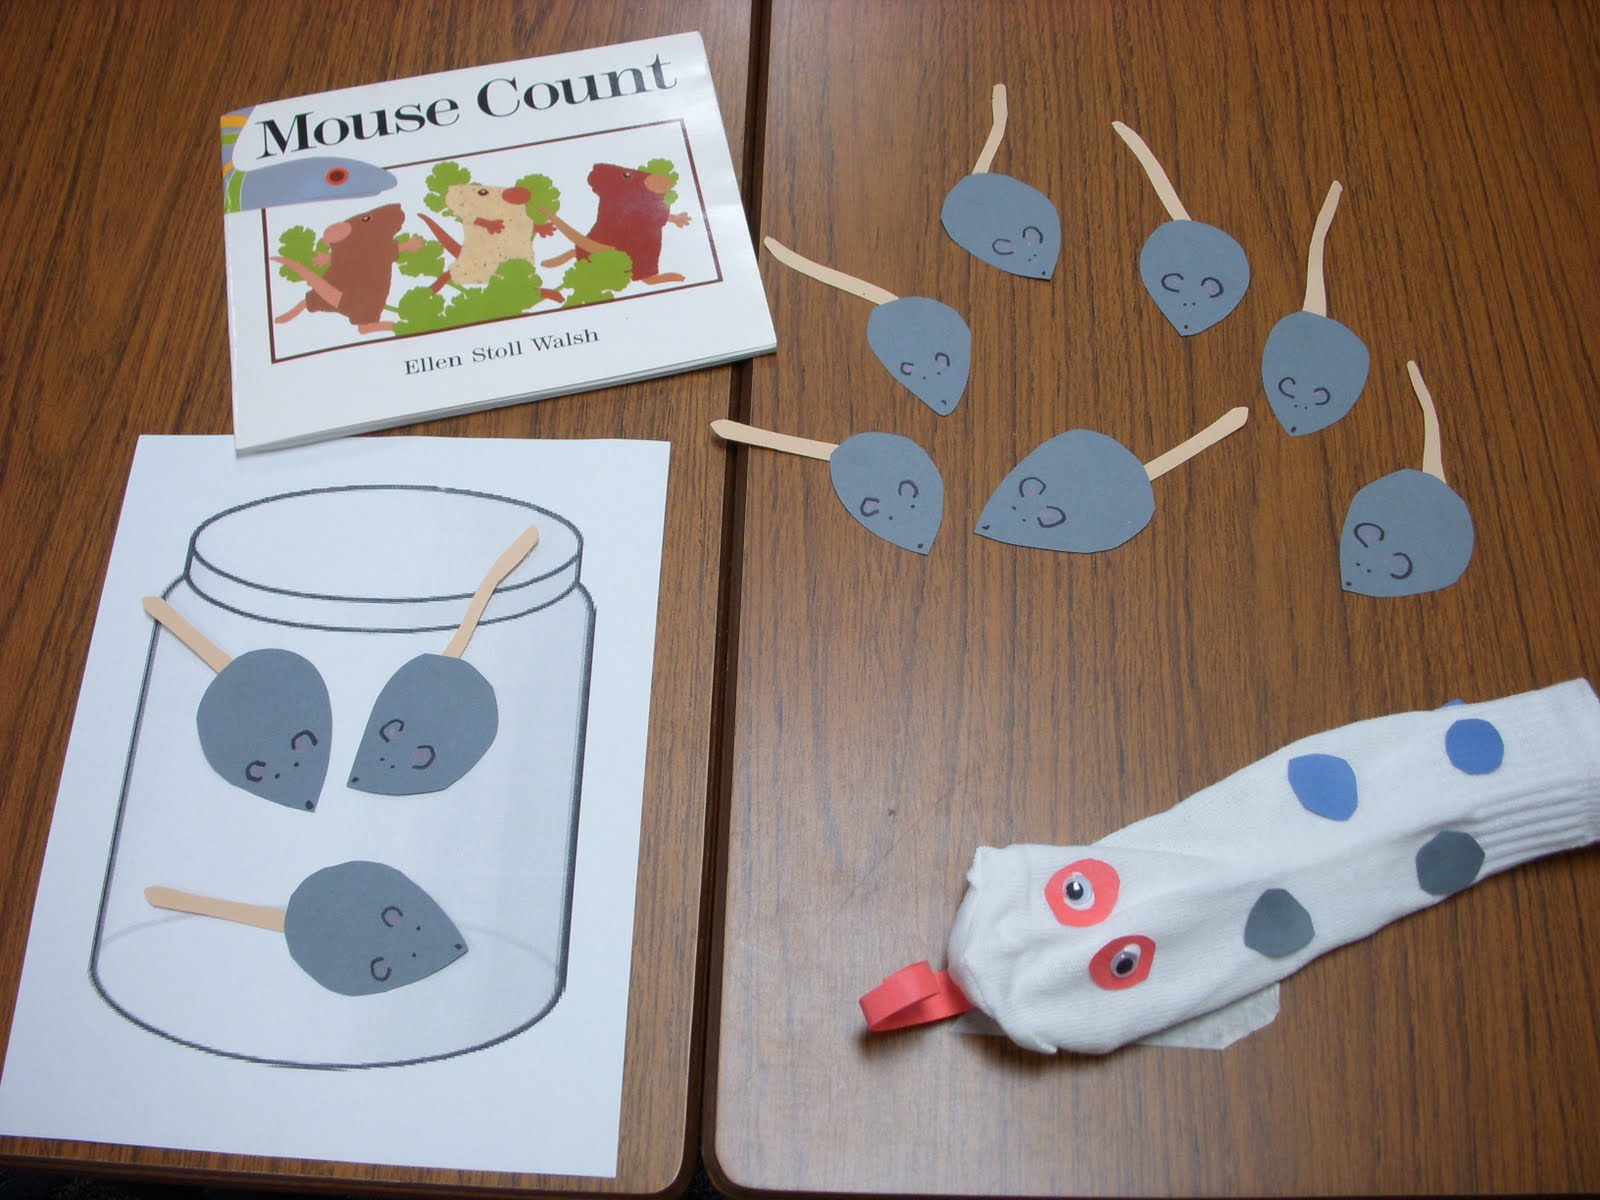 Kinder Garden: Live, Laugh, Learn: Mouse Count